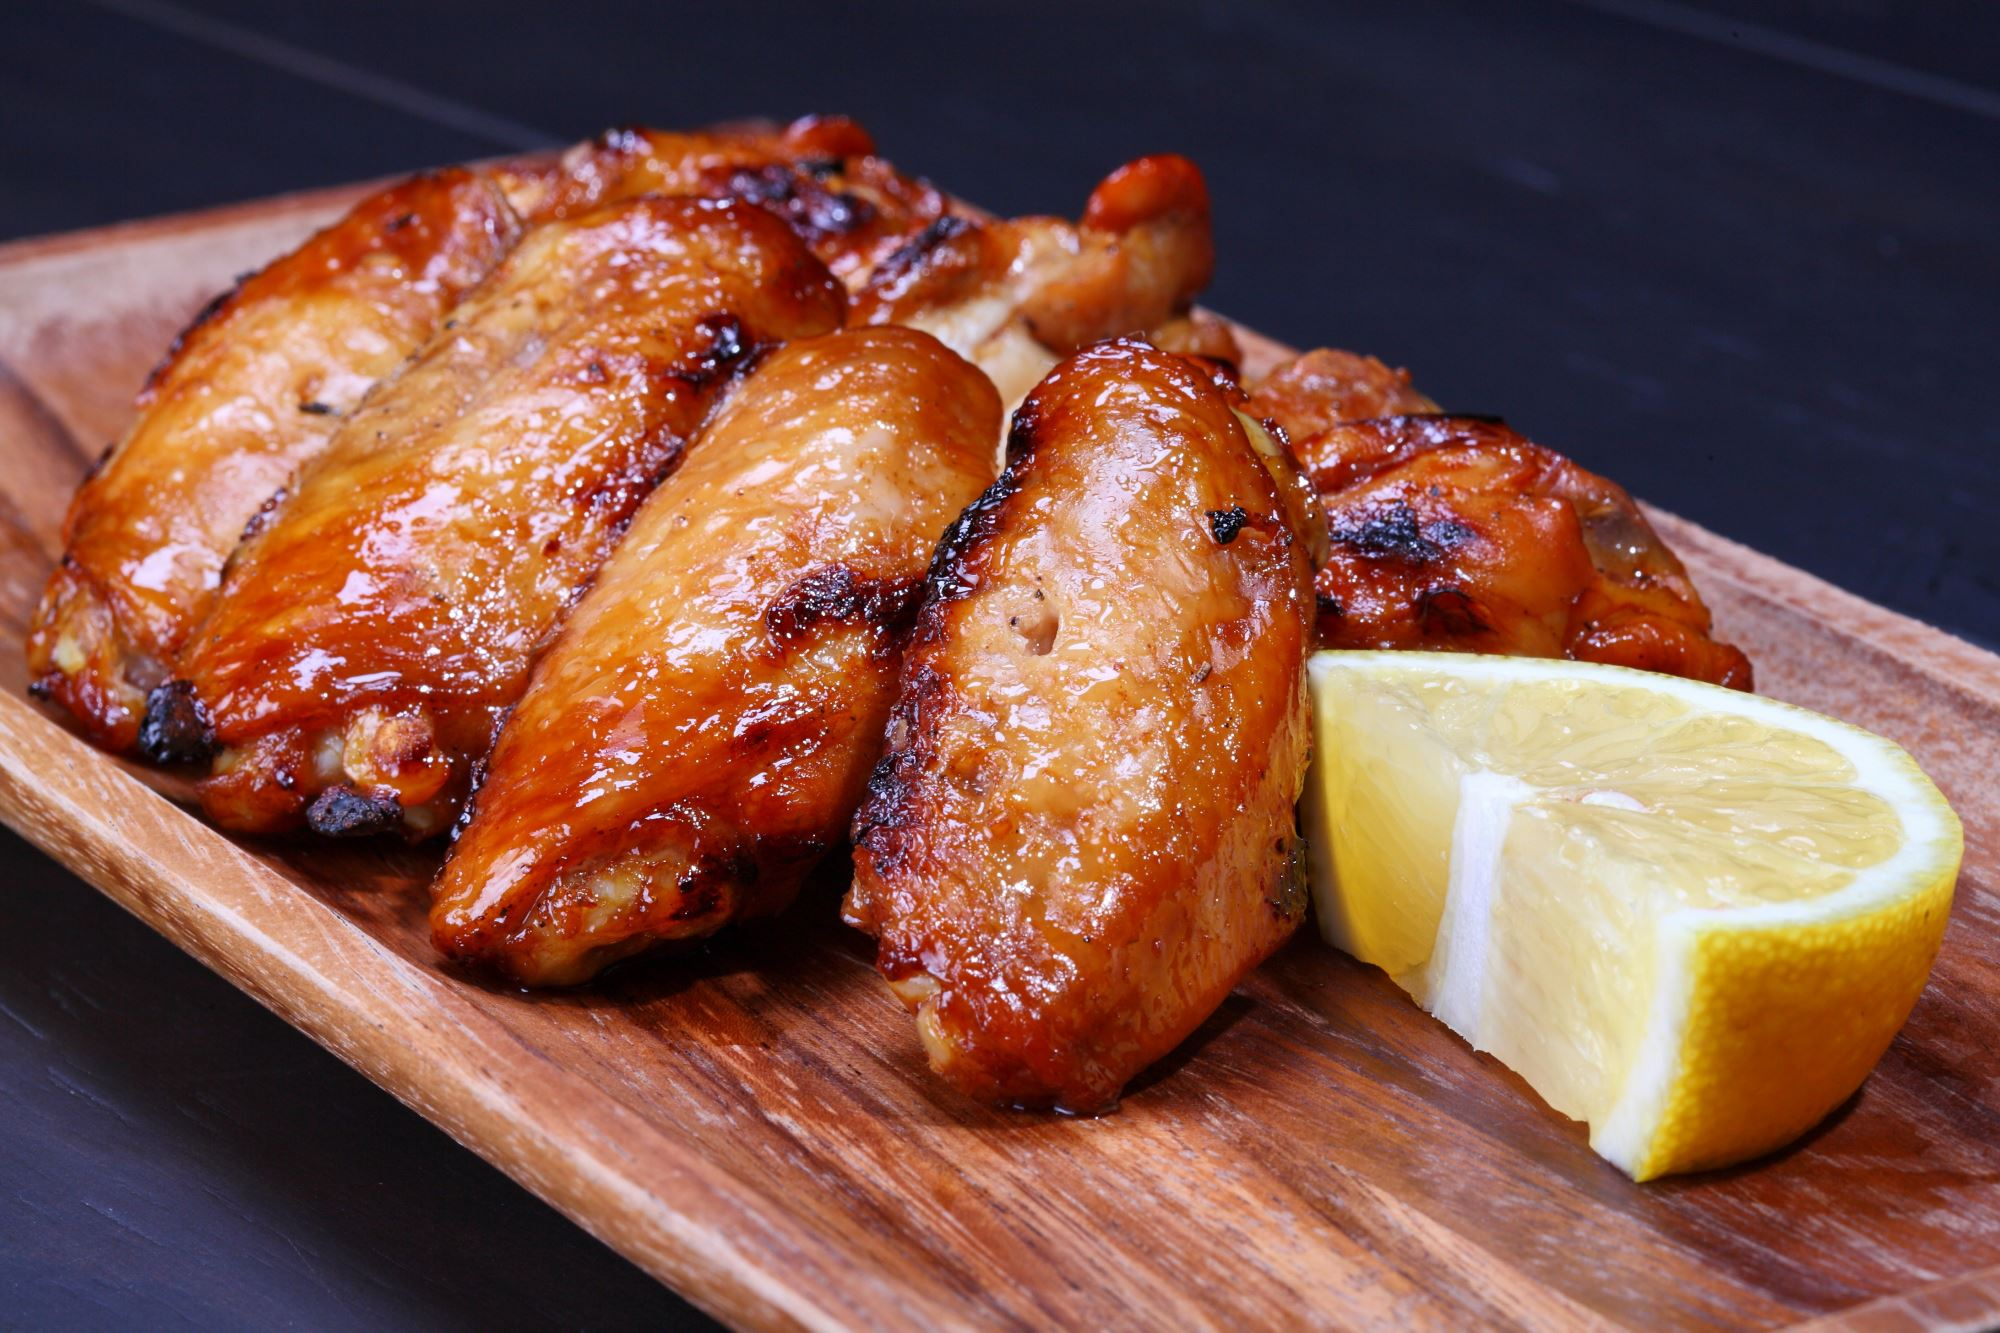 Citrus-barbecue wings